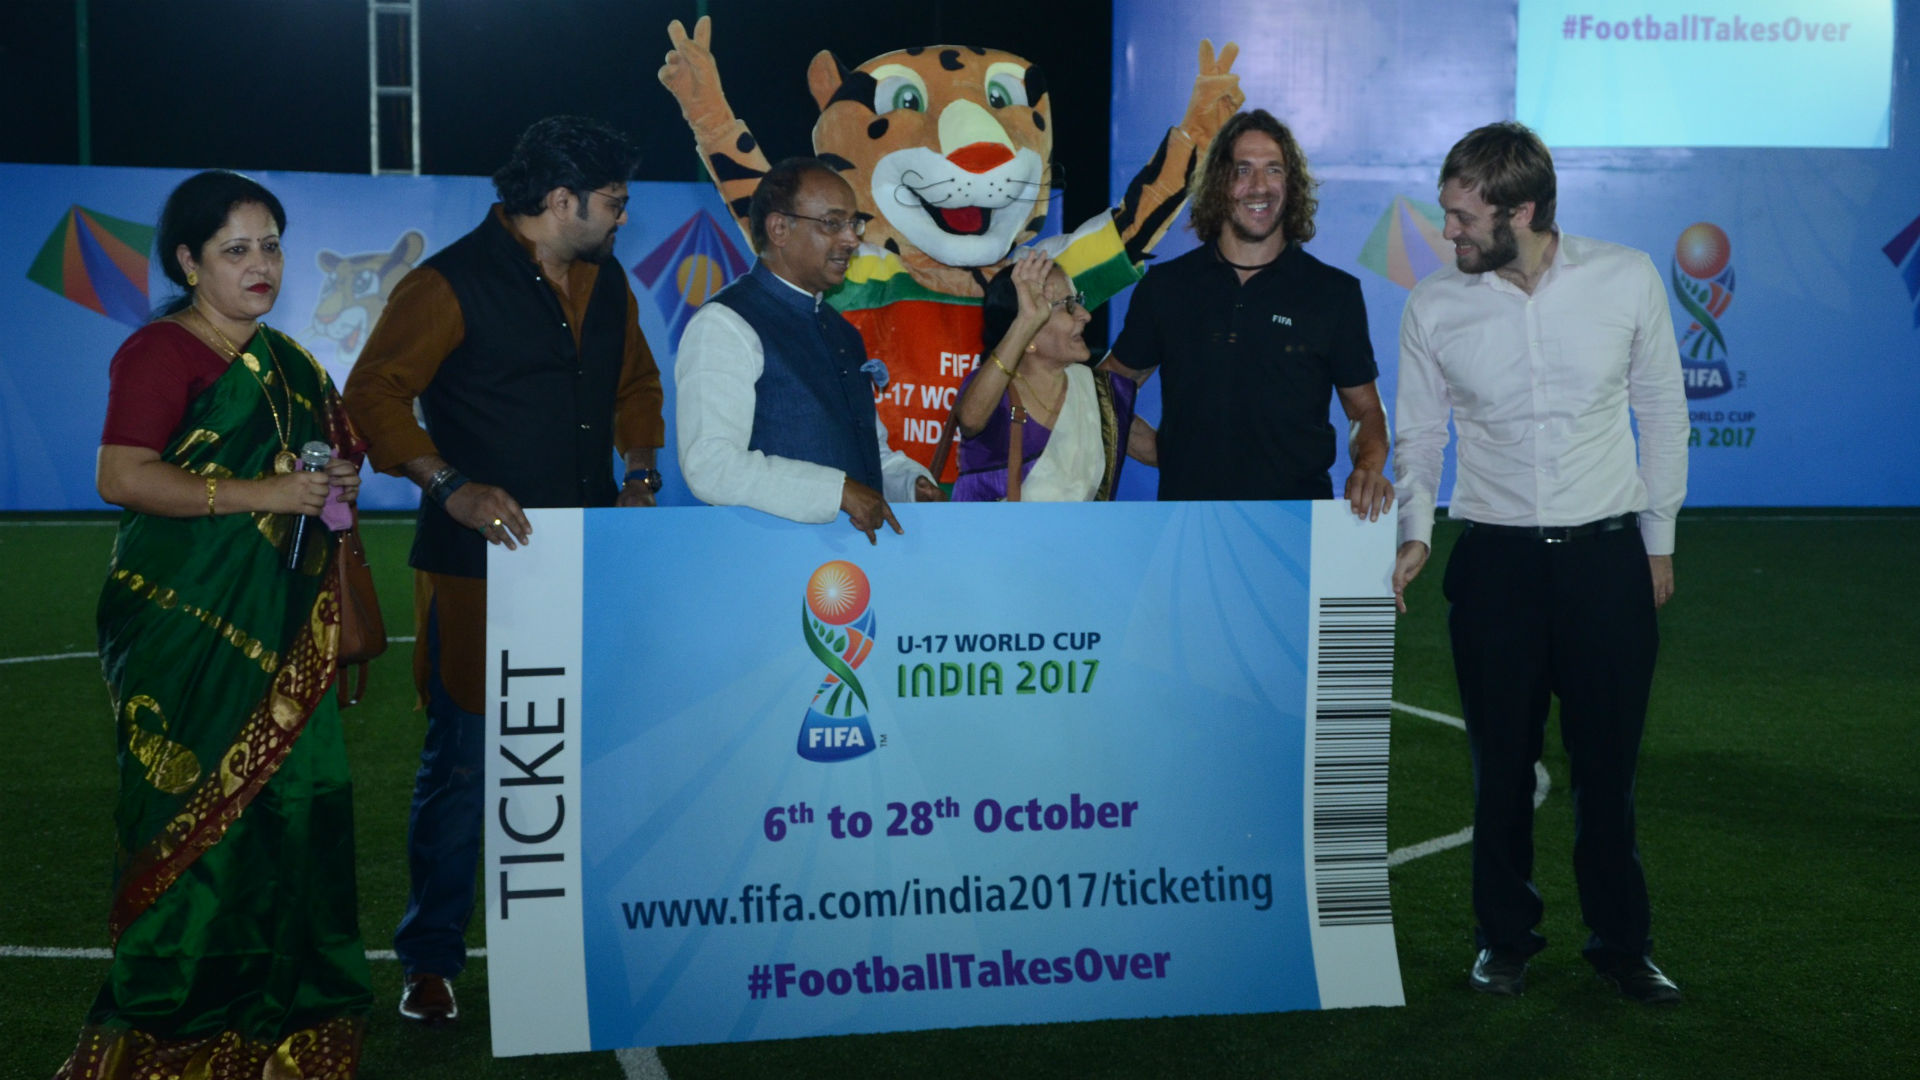 Carles Puyol FIFA U-17 World Cup India 2017